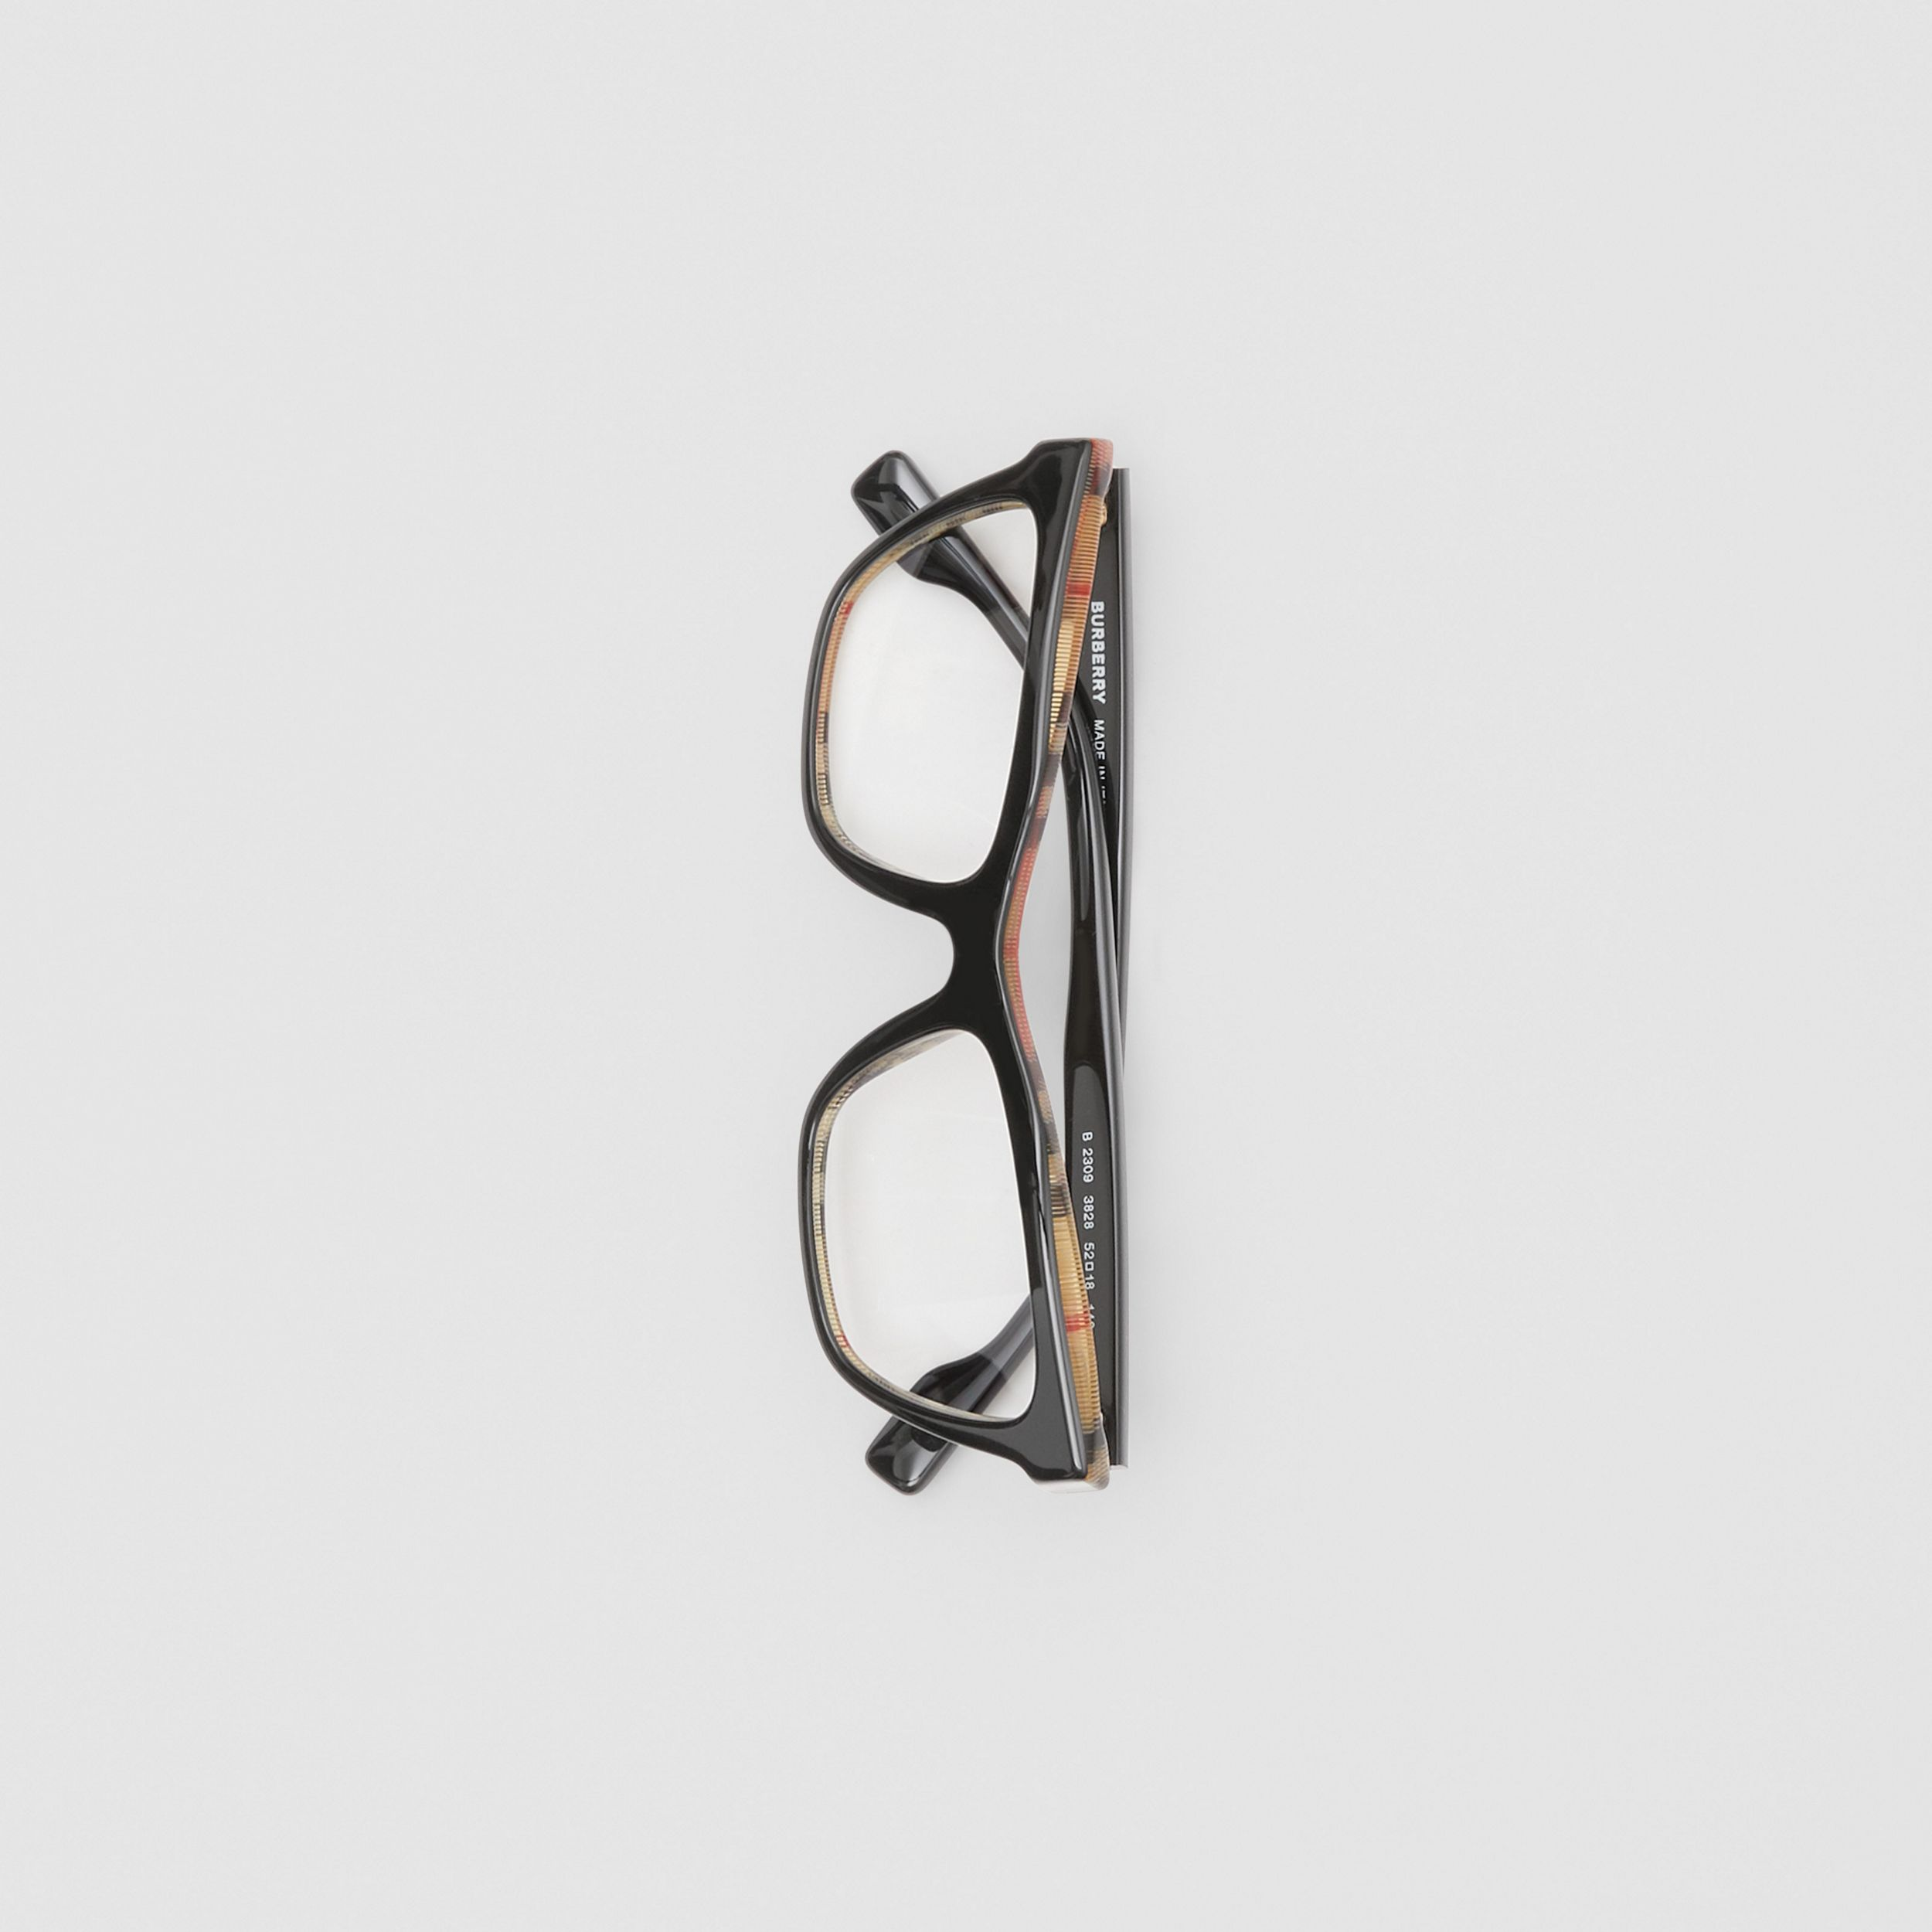 Rectangular Optical Frames in Black/beige - Women | Burberry United States - 3